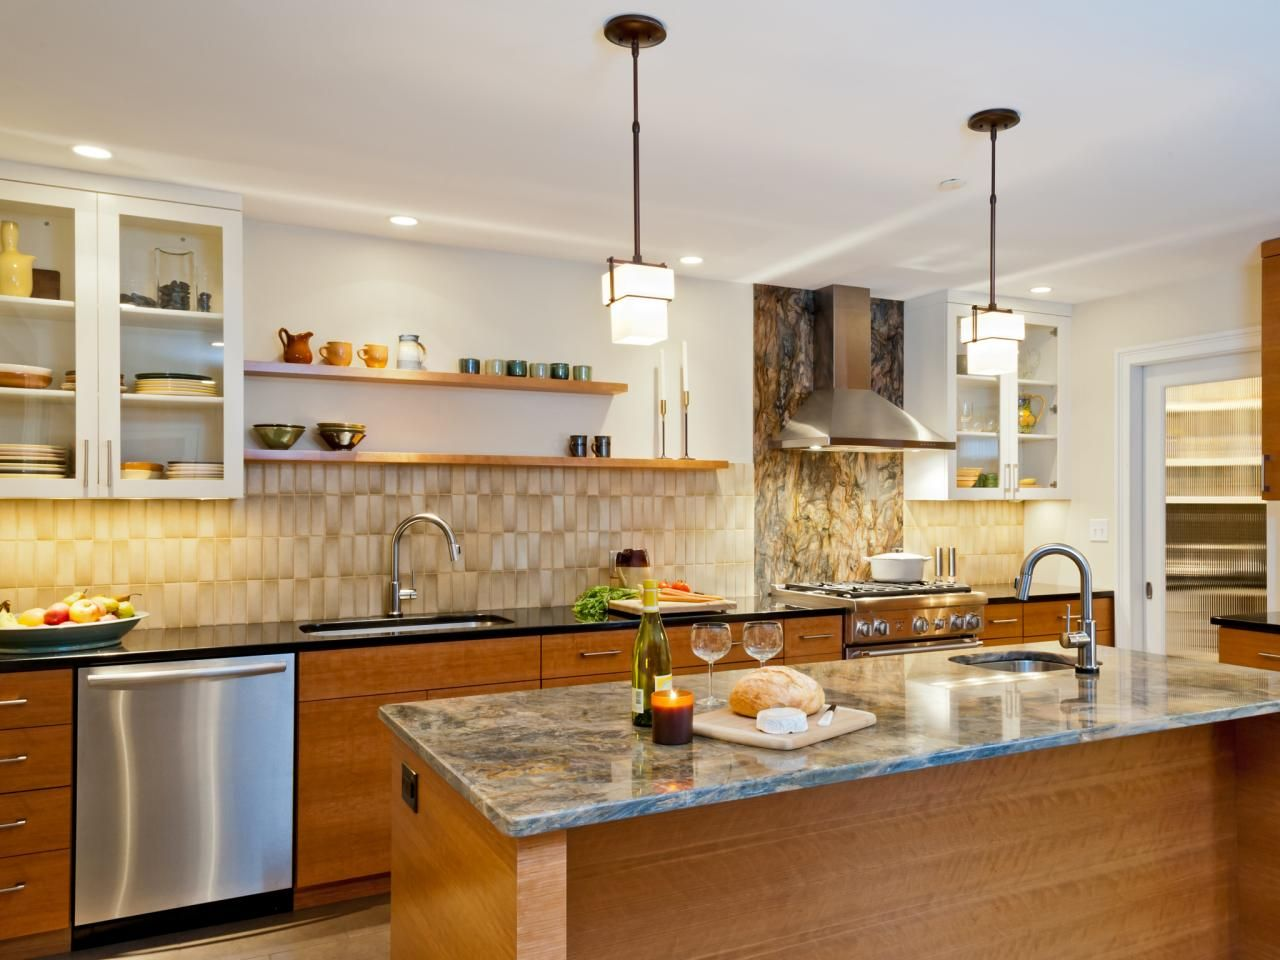 15 Design Ideas for Kitchens Without Upper Cabinets Upper